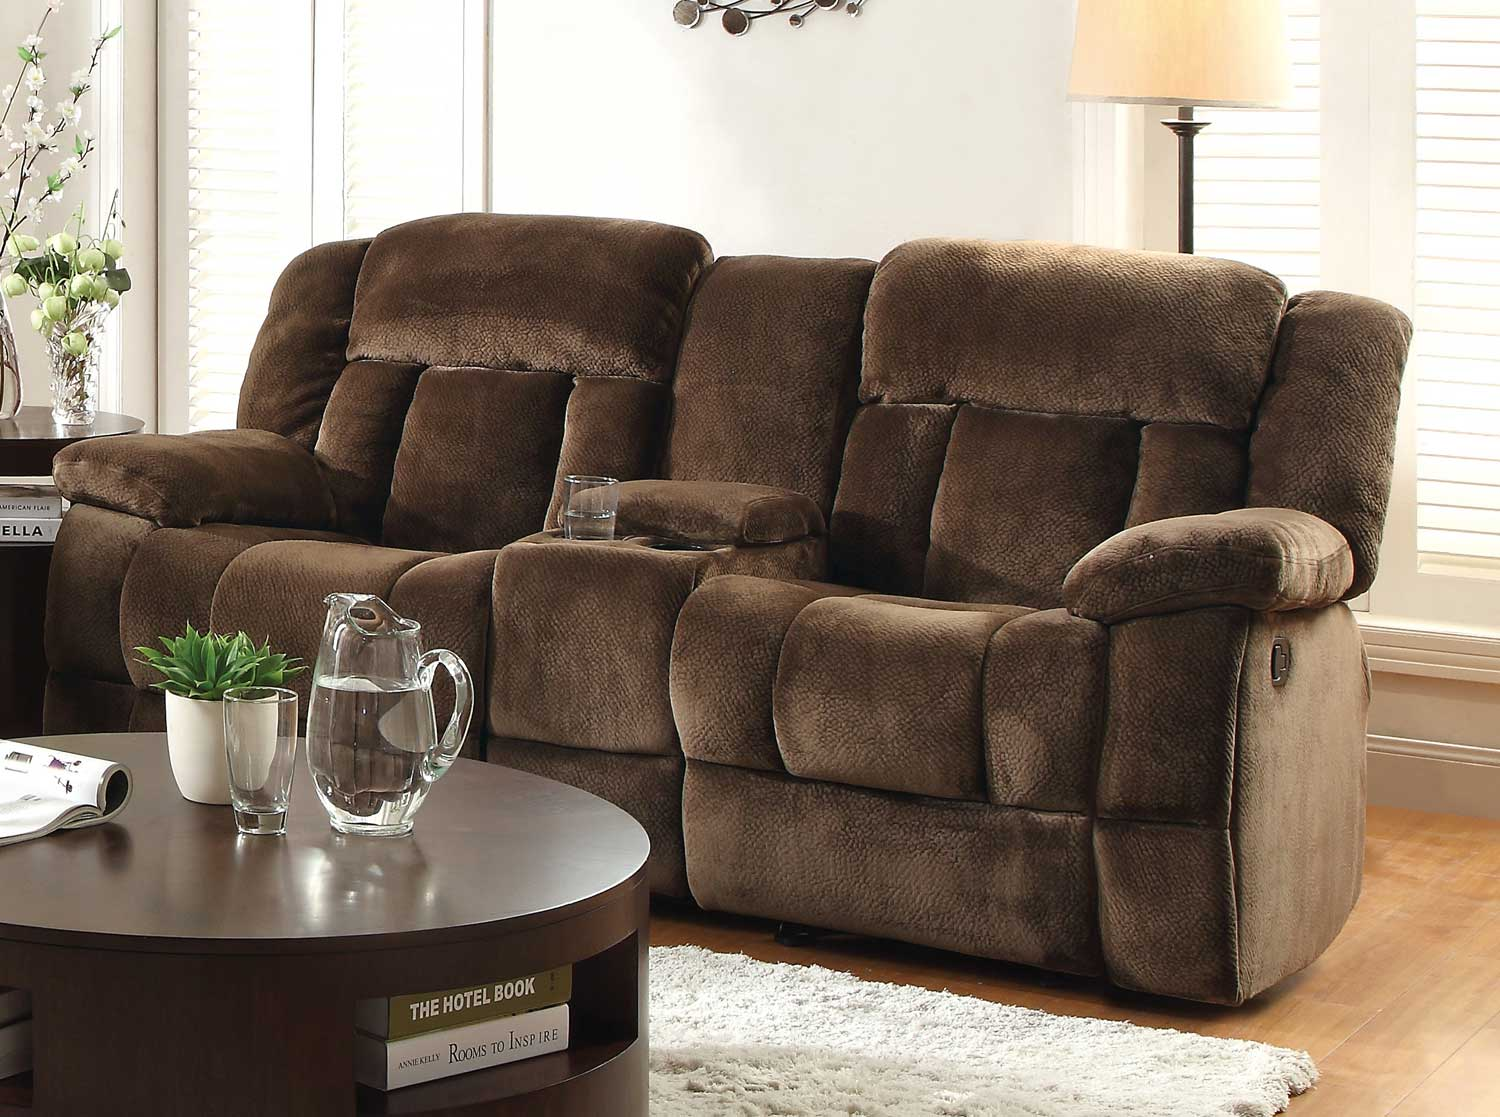 Making the right decision with reclining loveseat with center console